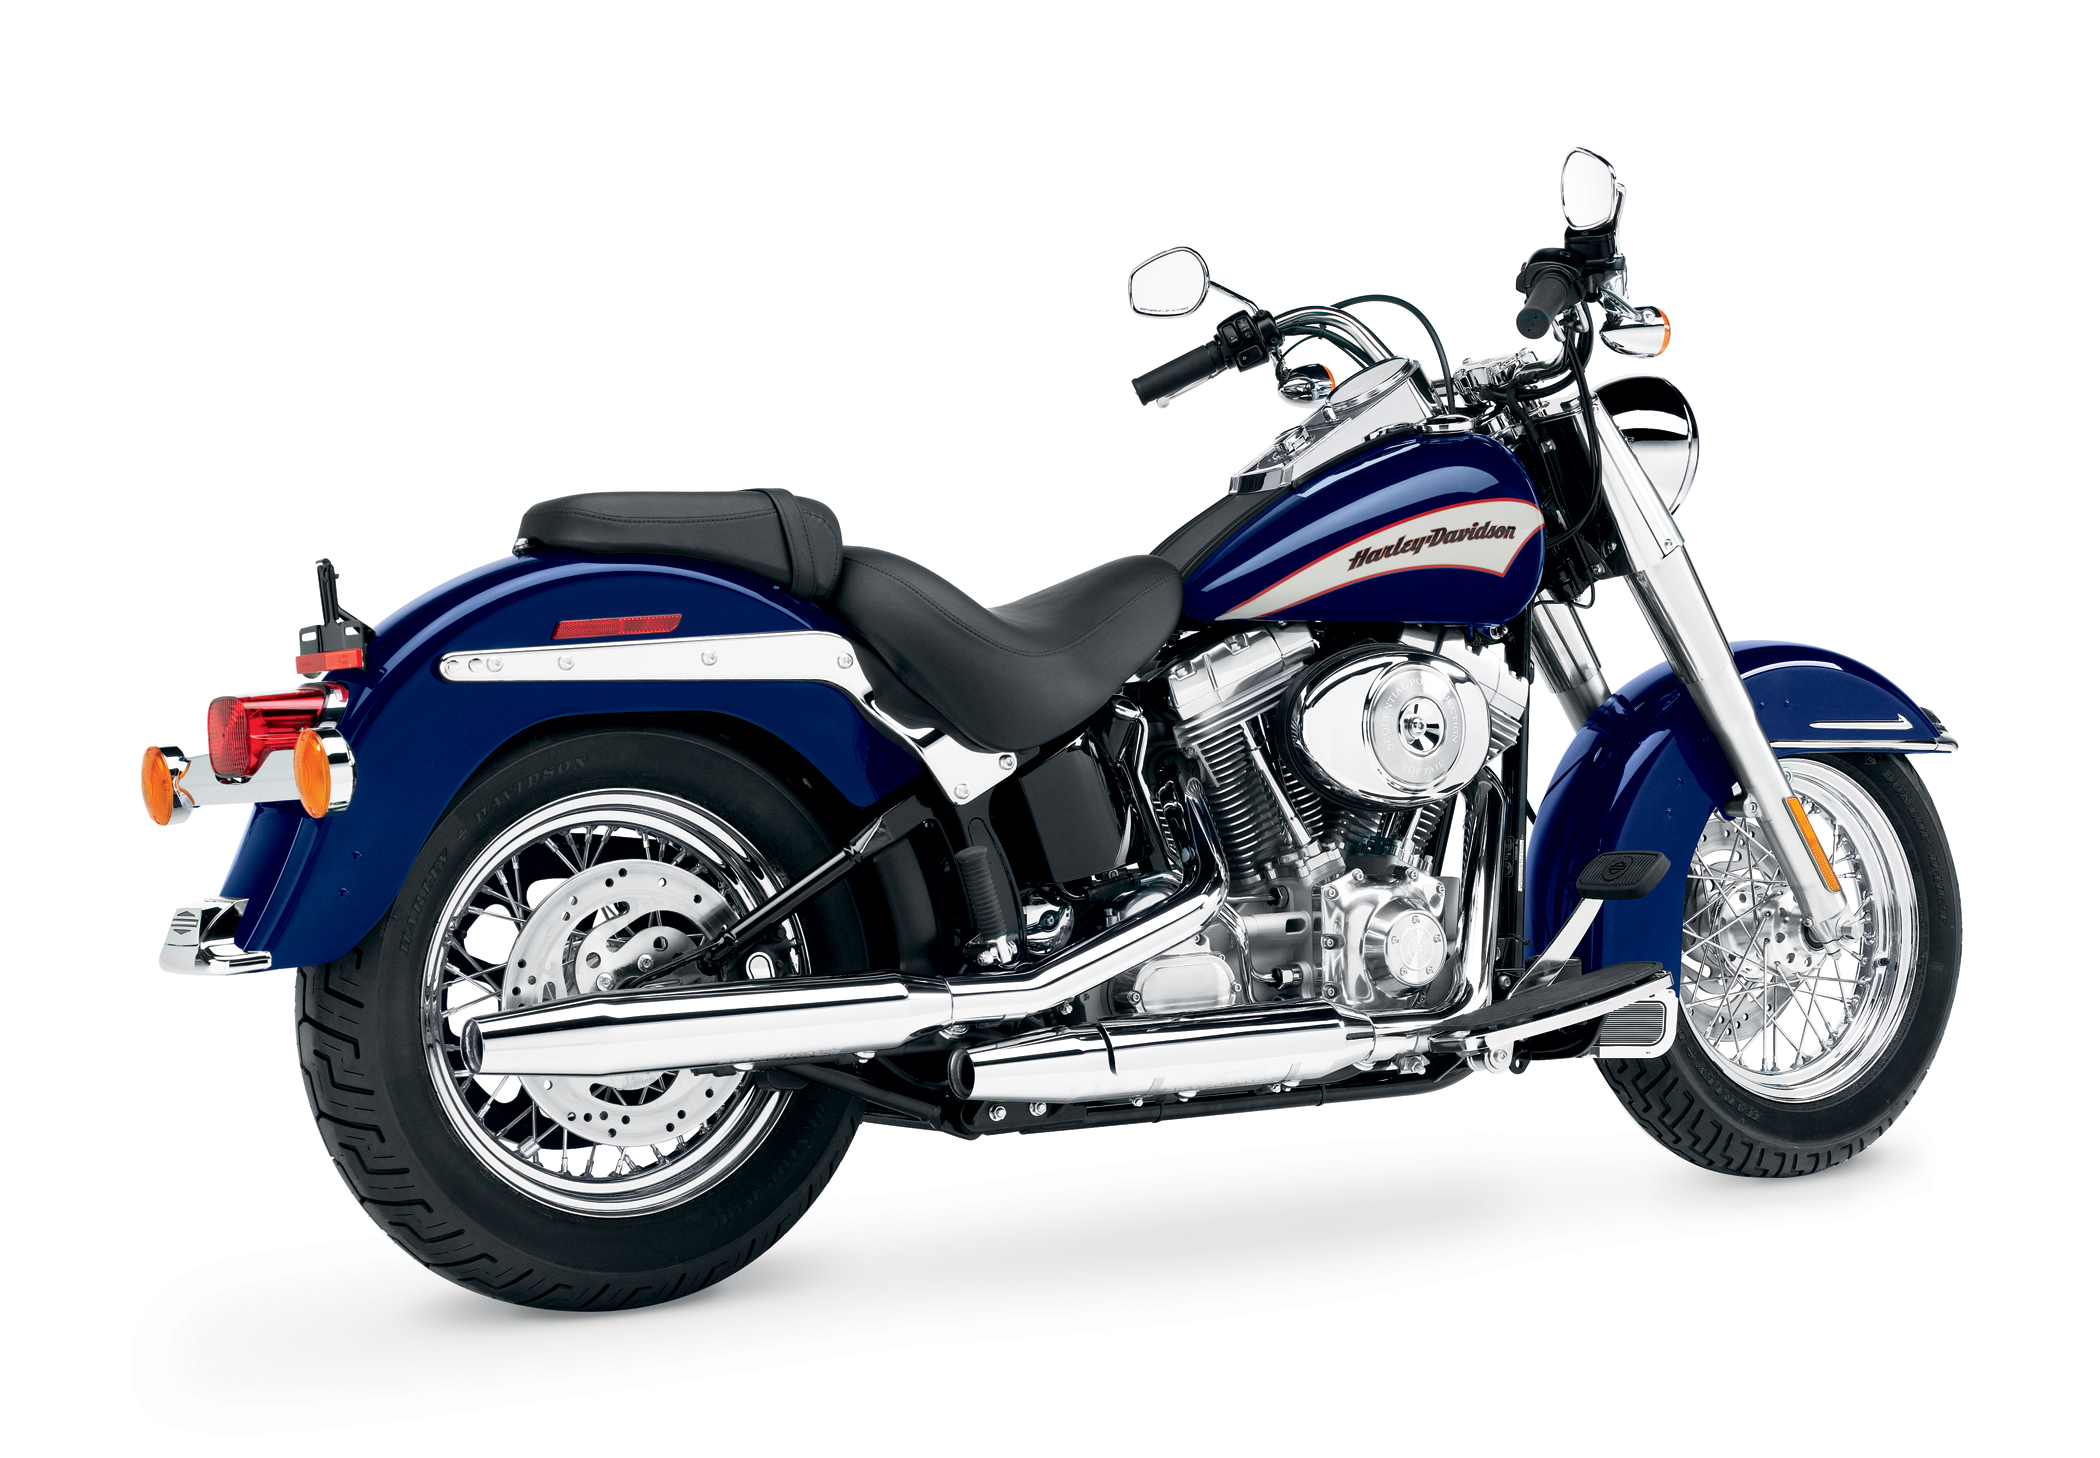 2006 Harley-Davidson FLST/I Heritage Softail | Top Speed